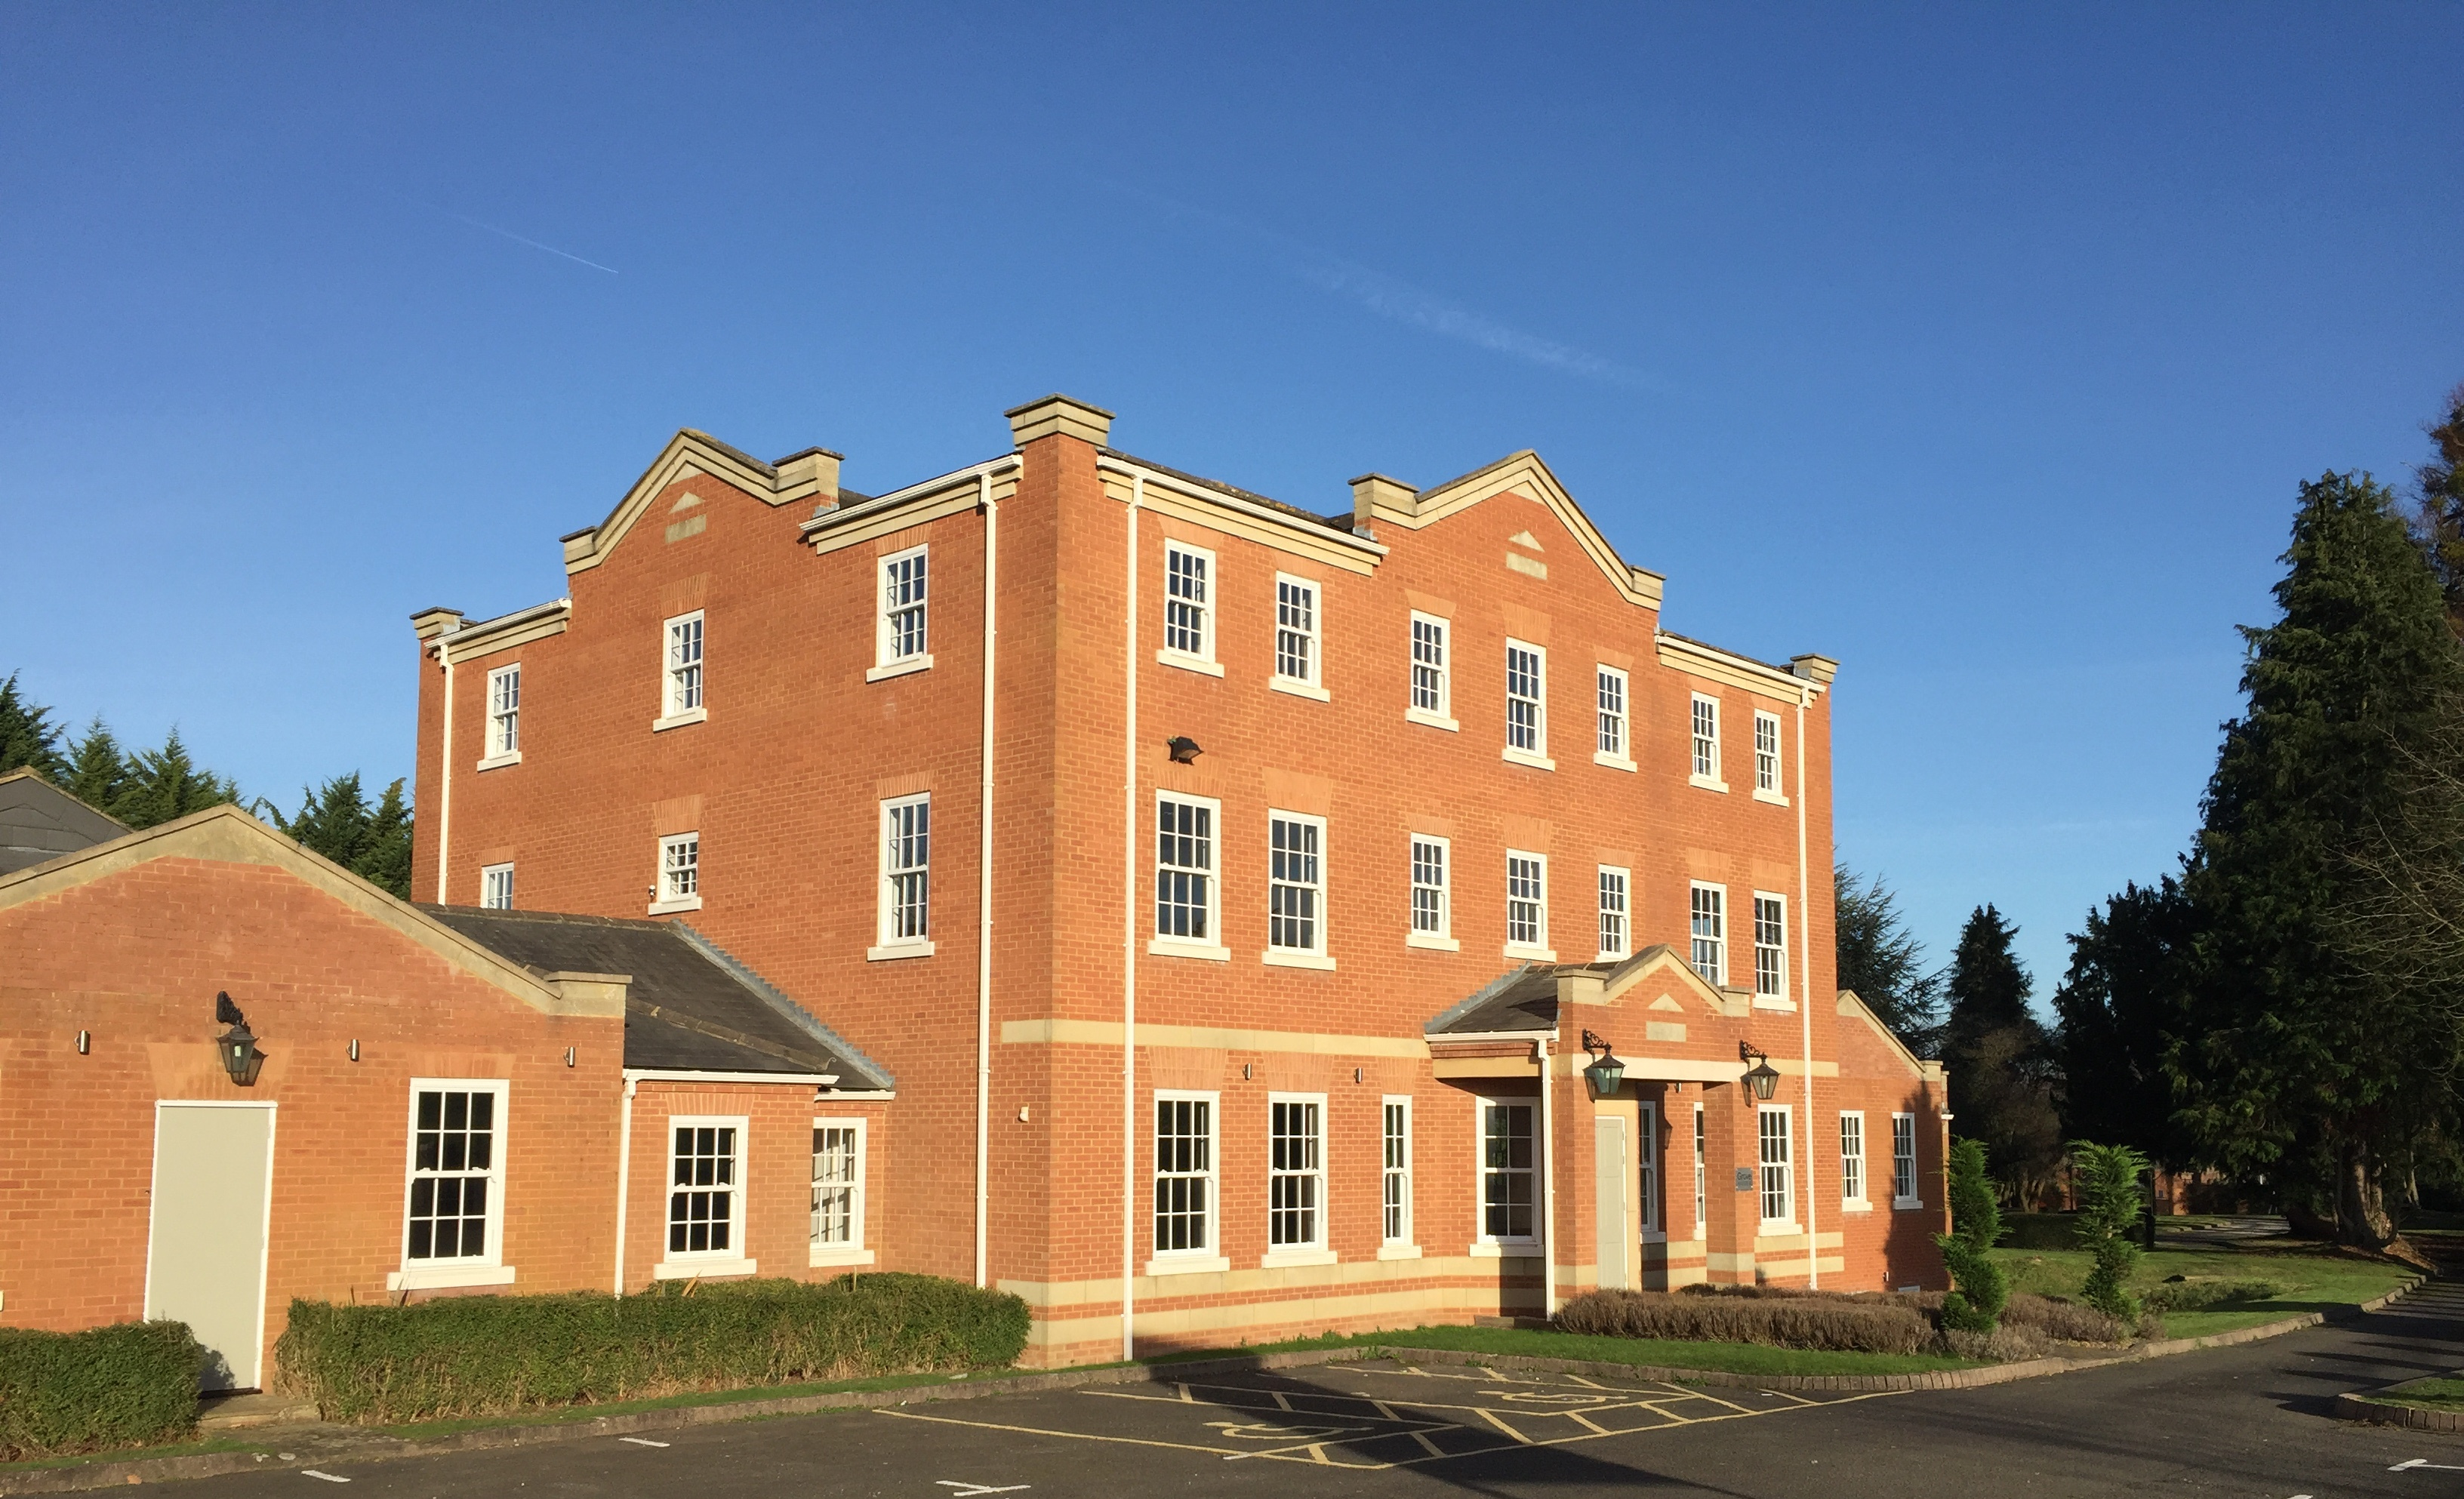 CLEAN moving to new head office in Maidenhead - News - CLEAN Services